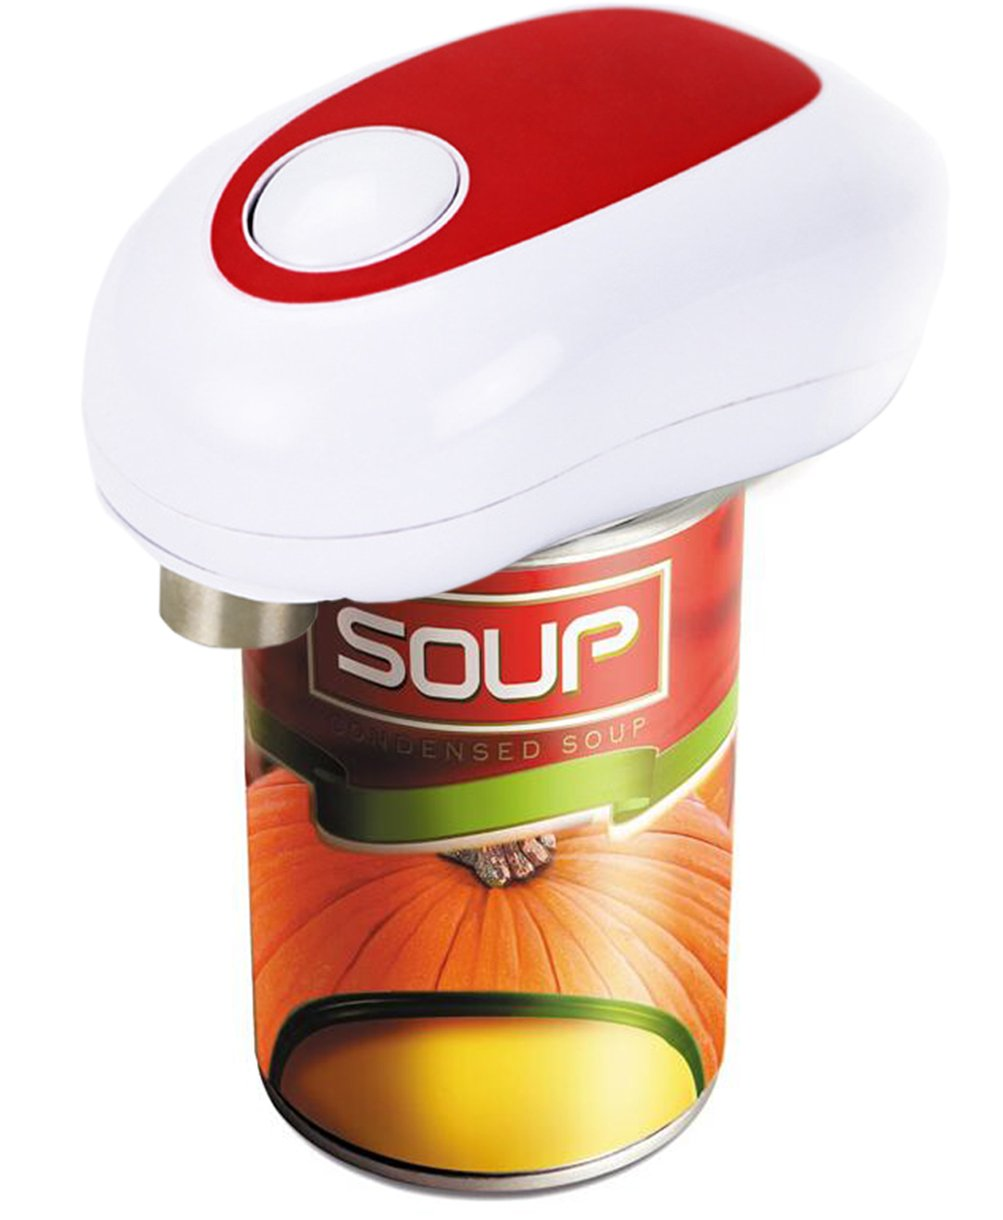 Electric Can Opener,Warmword Smooth Edge Automatic Electric Can Opener Hands Free